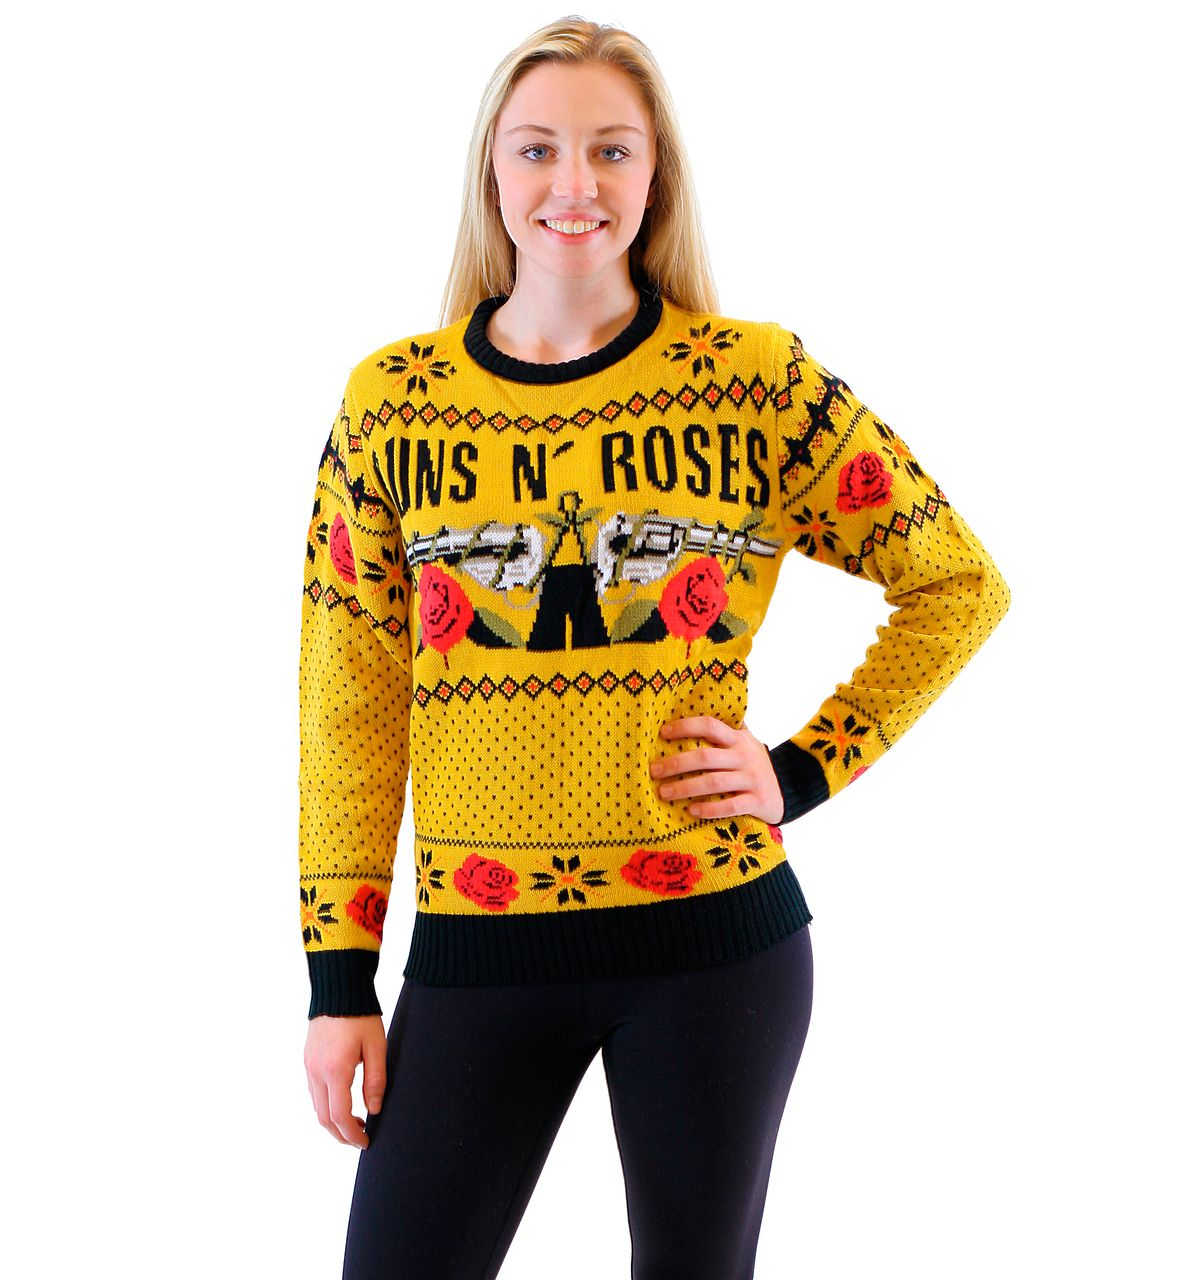 Pin on Women's Ugly Christmas Sweaters*